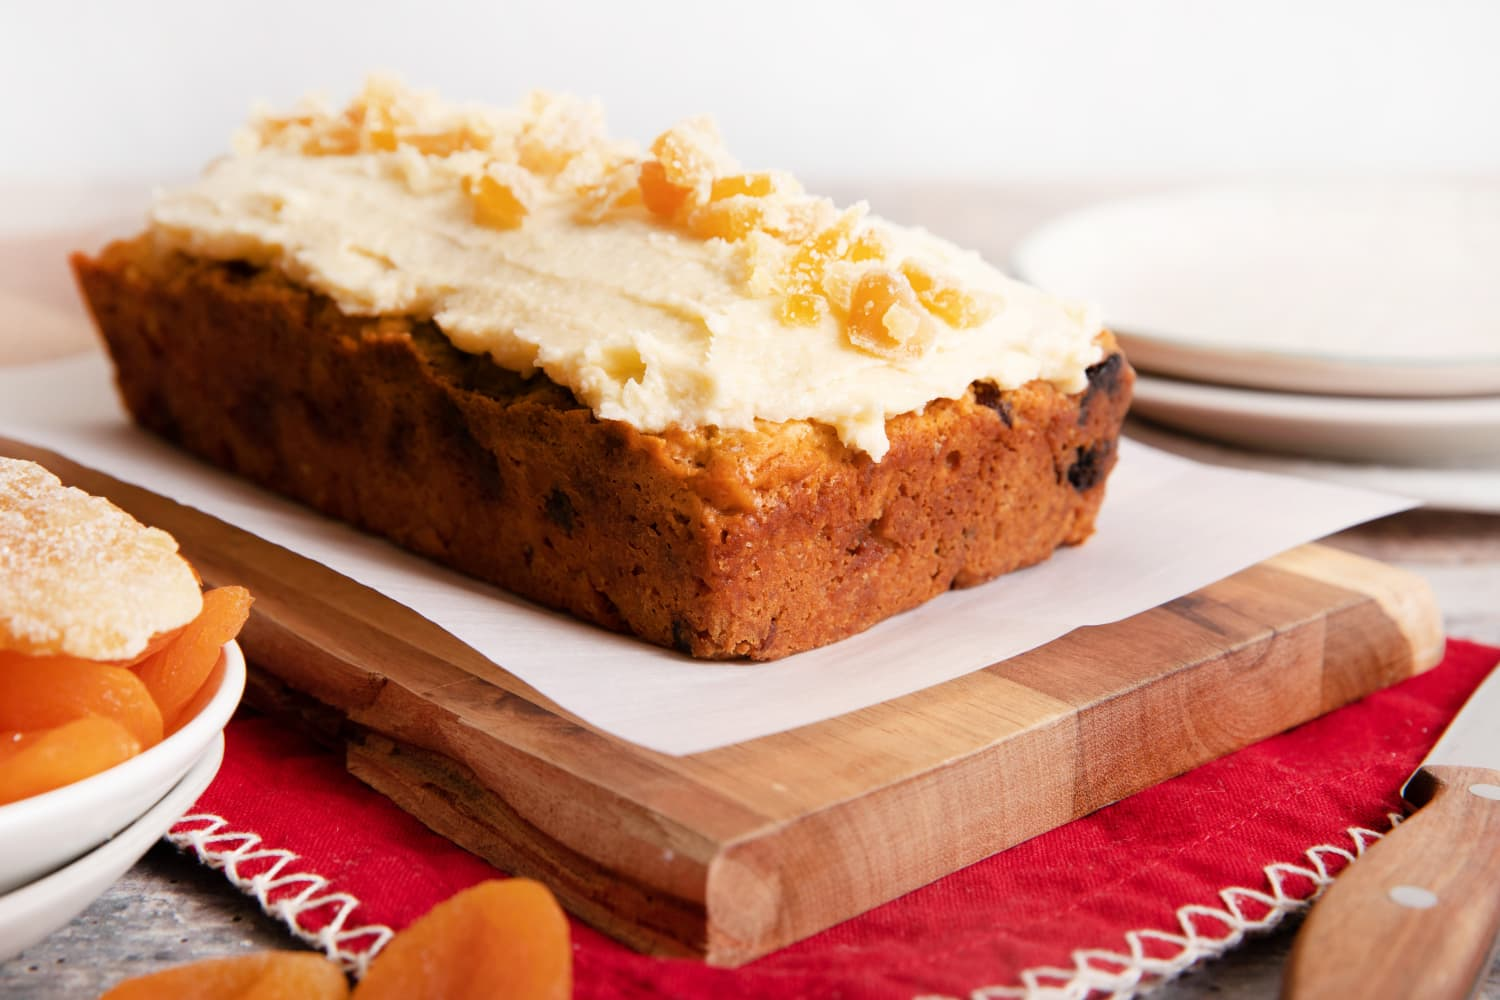 This Kicked Up Fruit Cake Is the Perfect Holiday Loaf